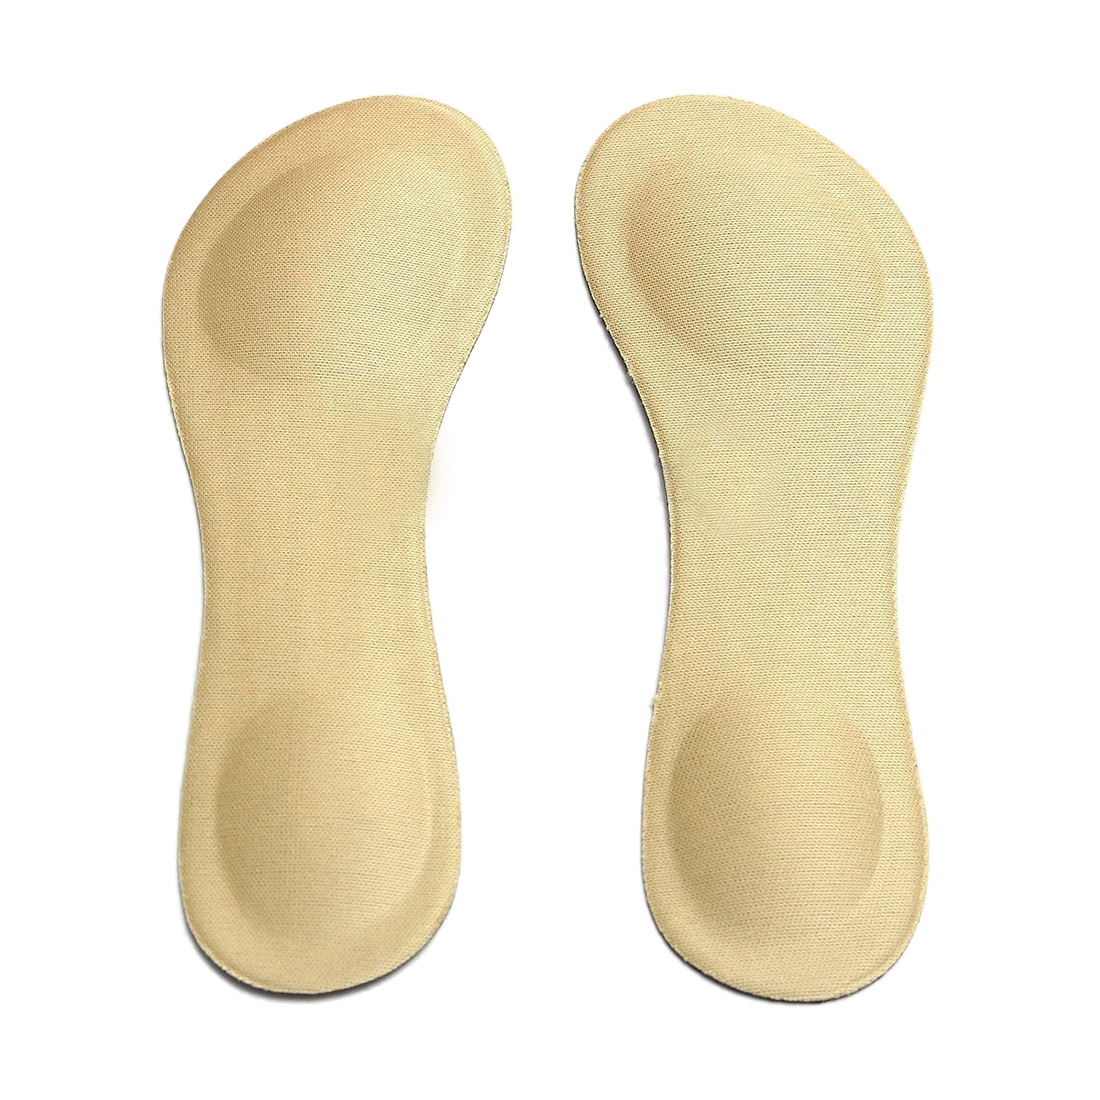 Soft Insoles Instant Comfort Shoe Arch Support High Heels 1 pair soft insoles instant comfort shoe arch support high heels leopard print